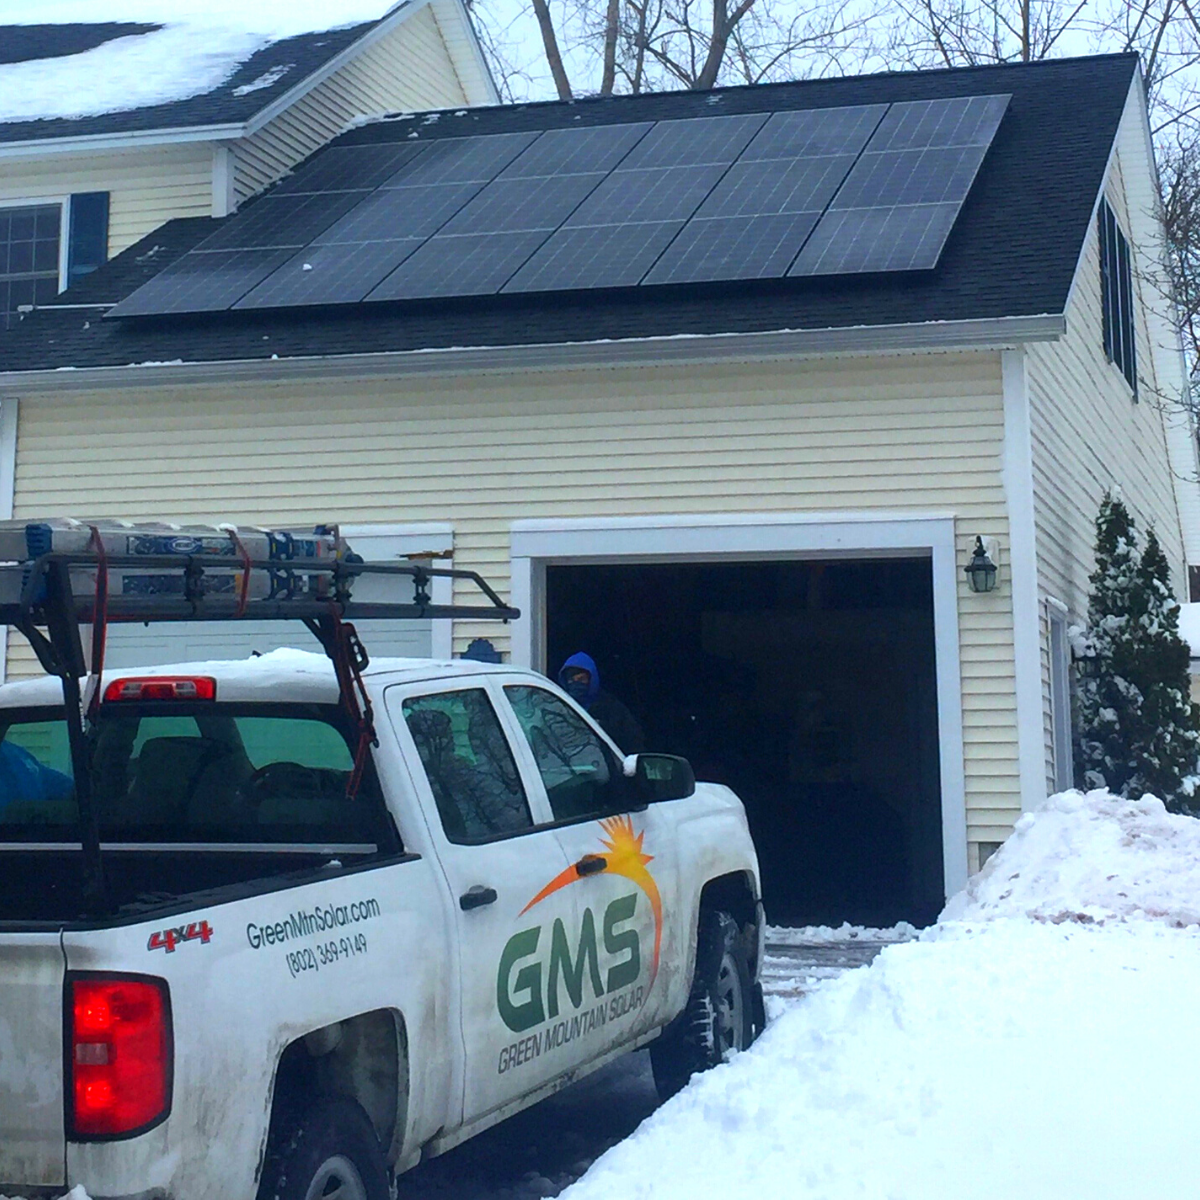 solar panels on garage roof in Vermont with Green Mountain Solar truck